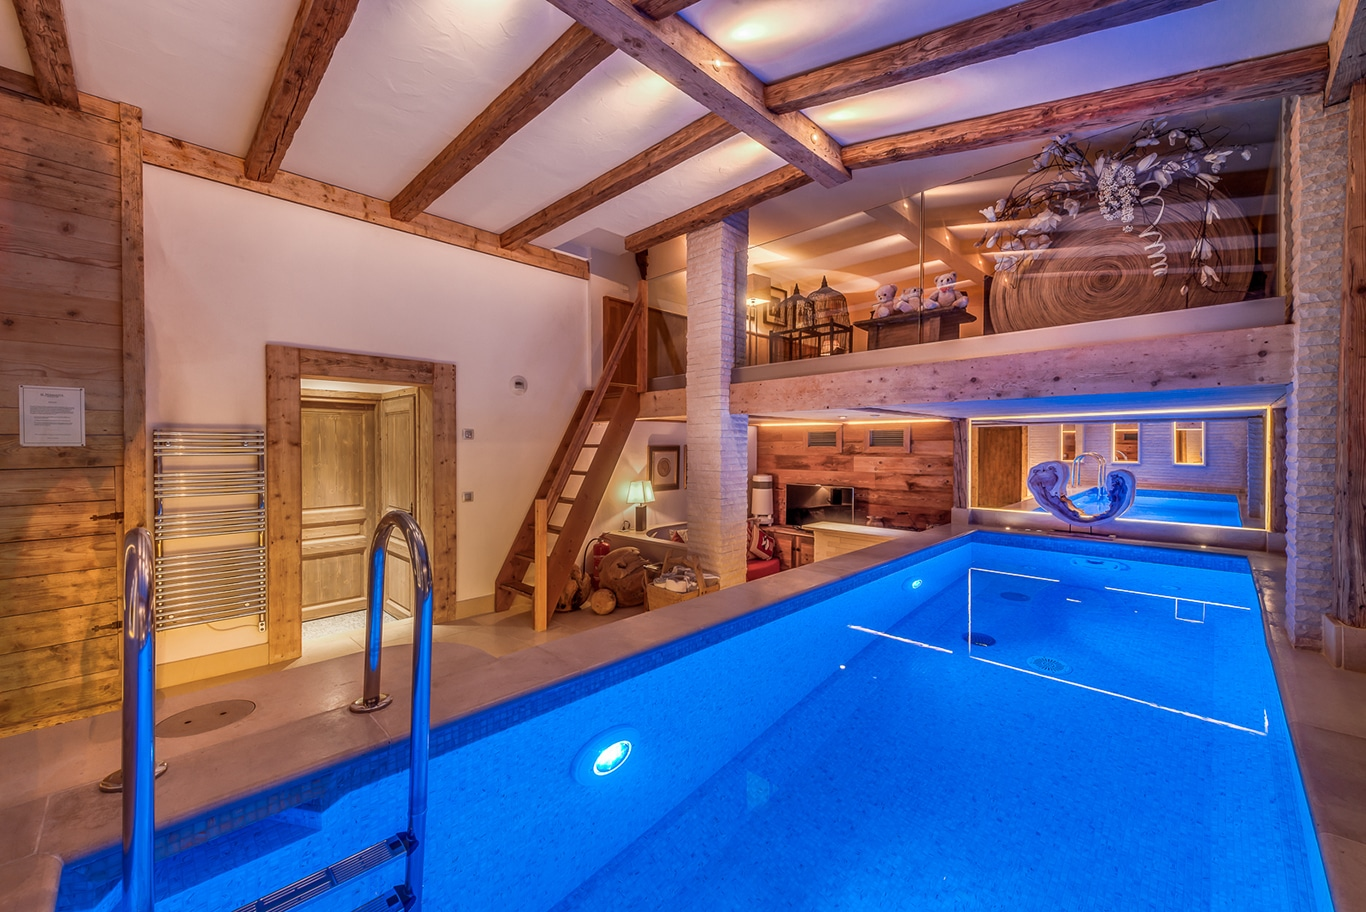 Chalet Namaste Courchevel 1850 Pool